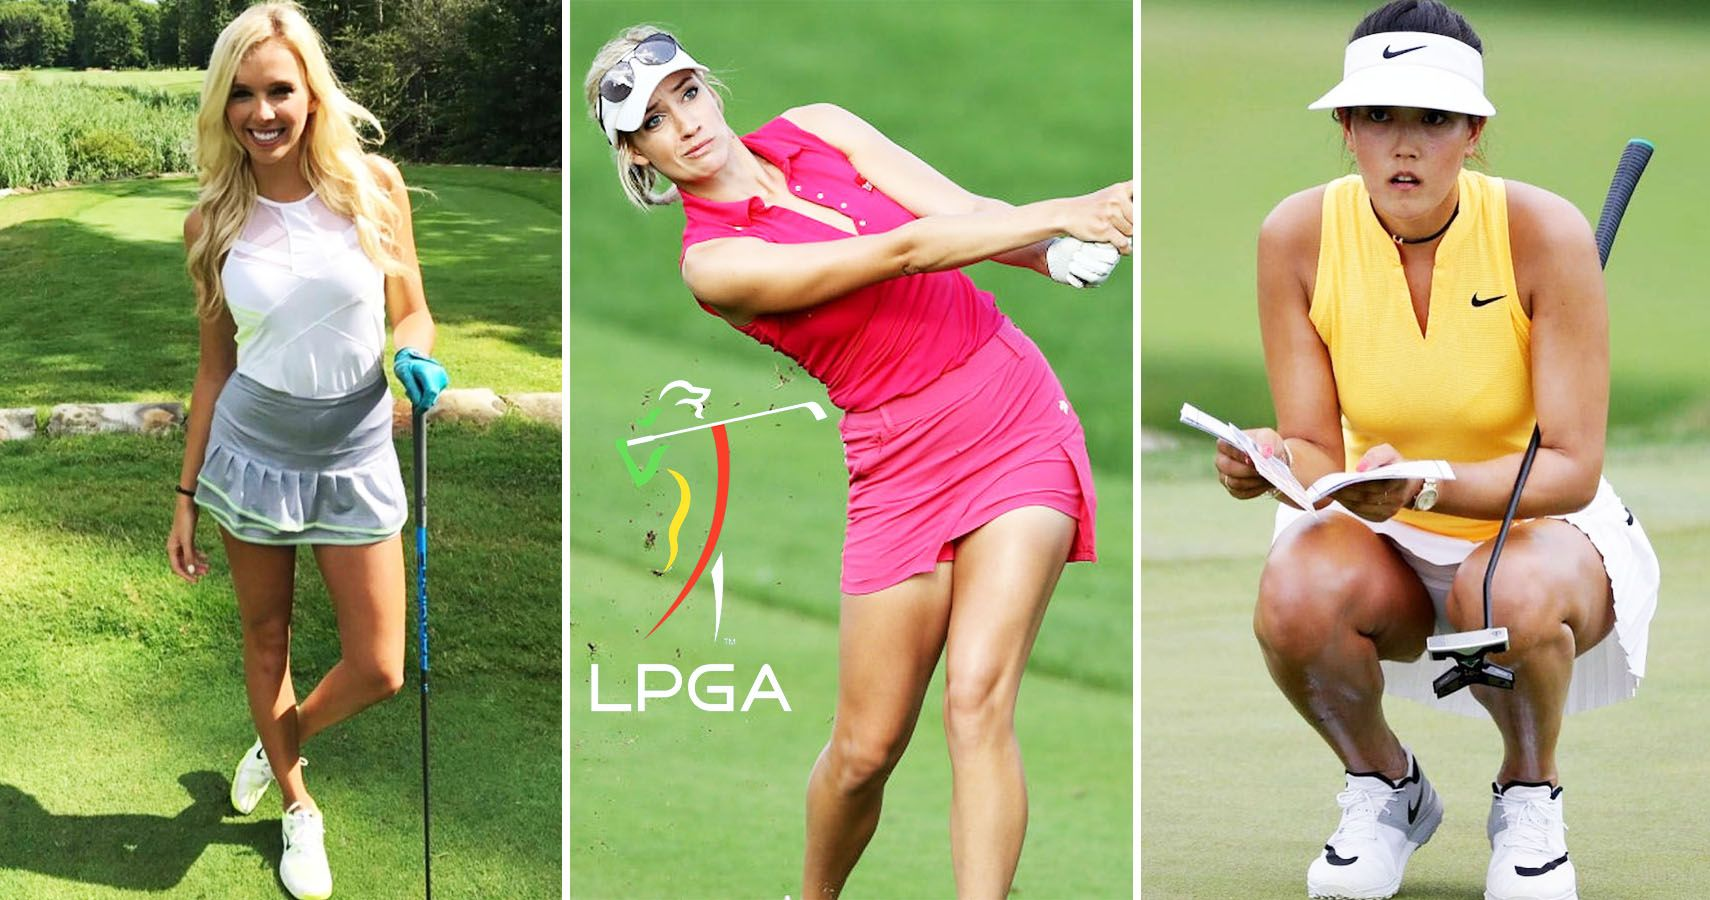 golfing outfits the lpga would not approve of | thesportster